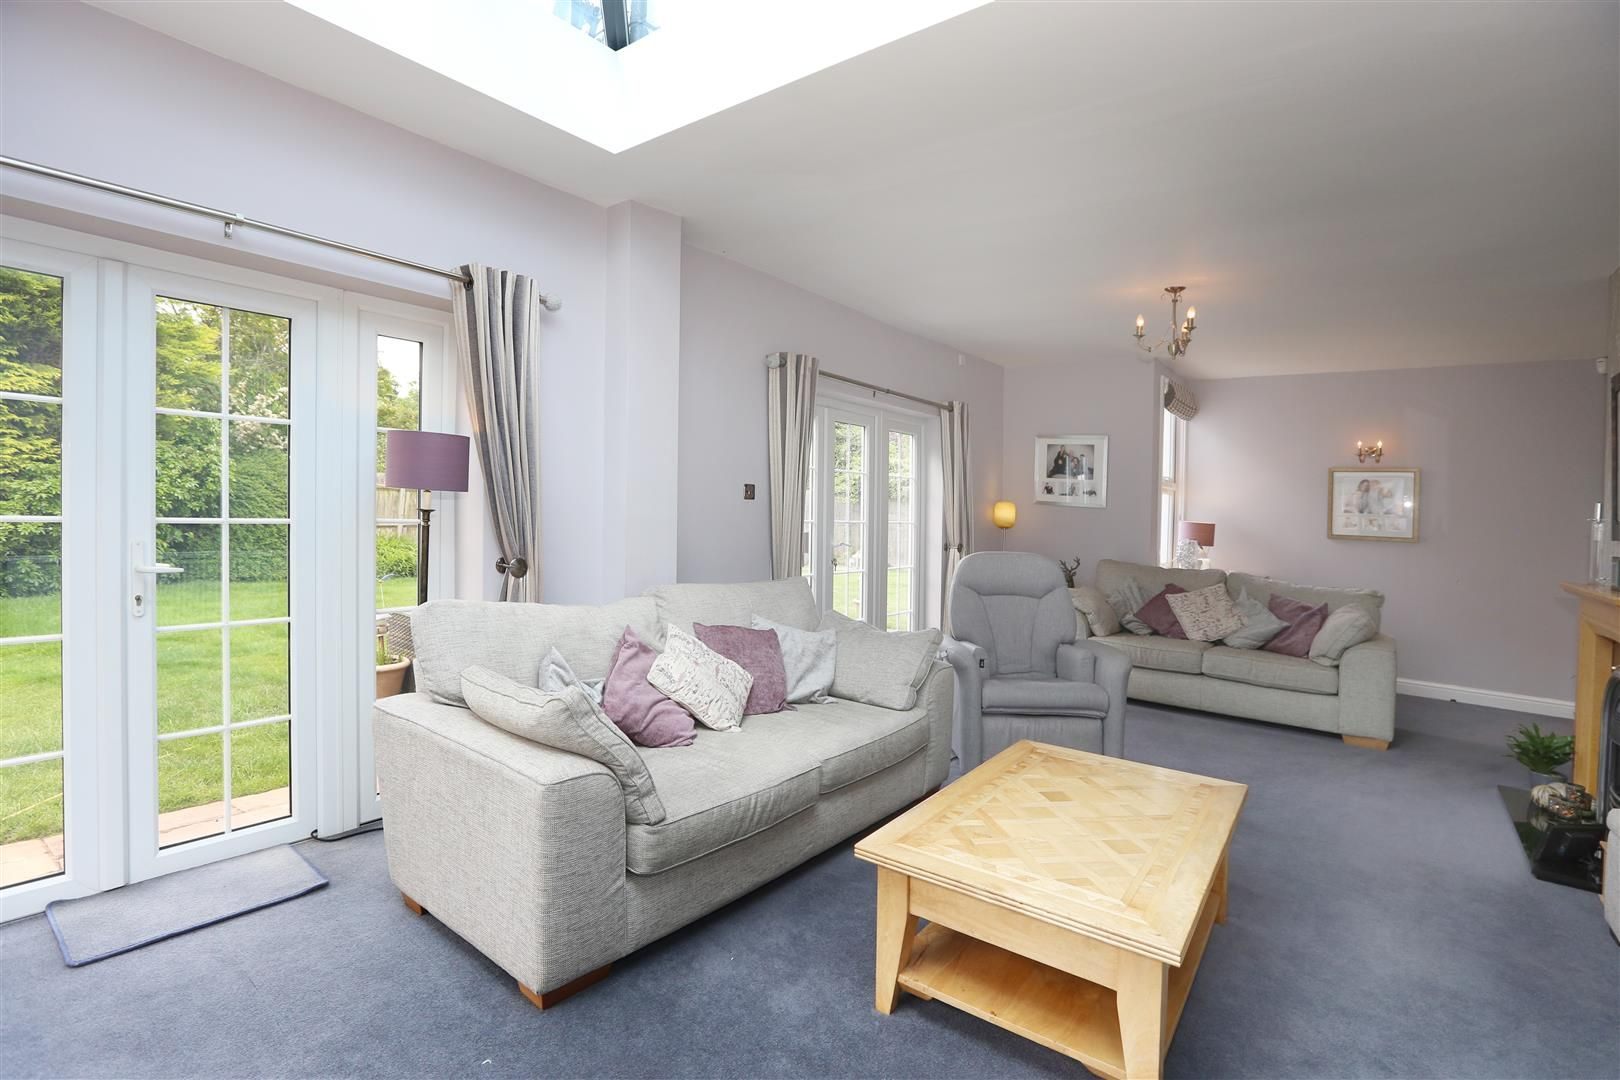 4 bed house for sale in Churchill 6